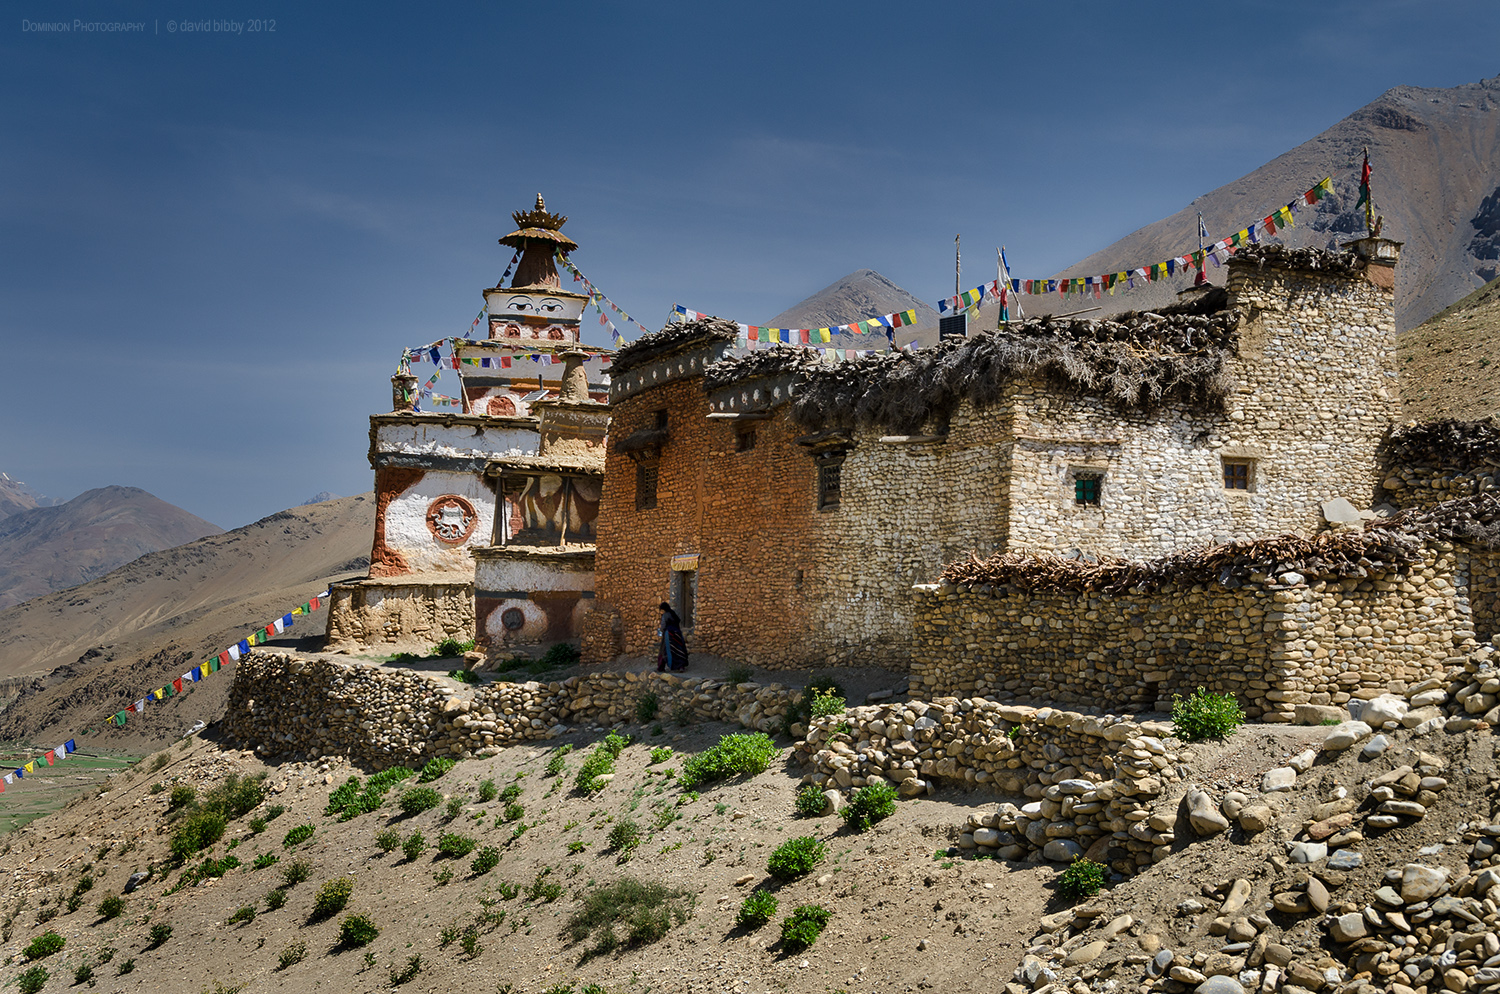 Gompa and nunnery at Dho Tarap. Dolpa district.